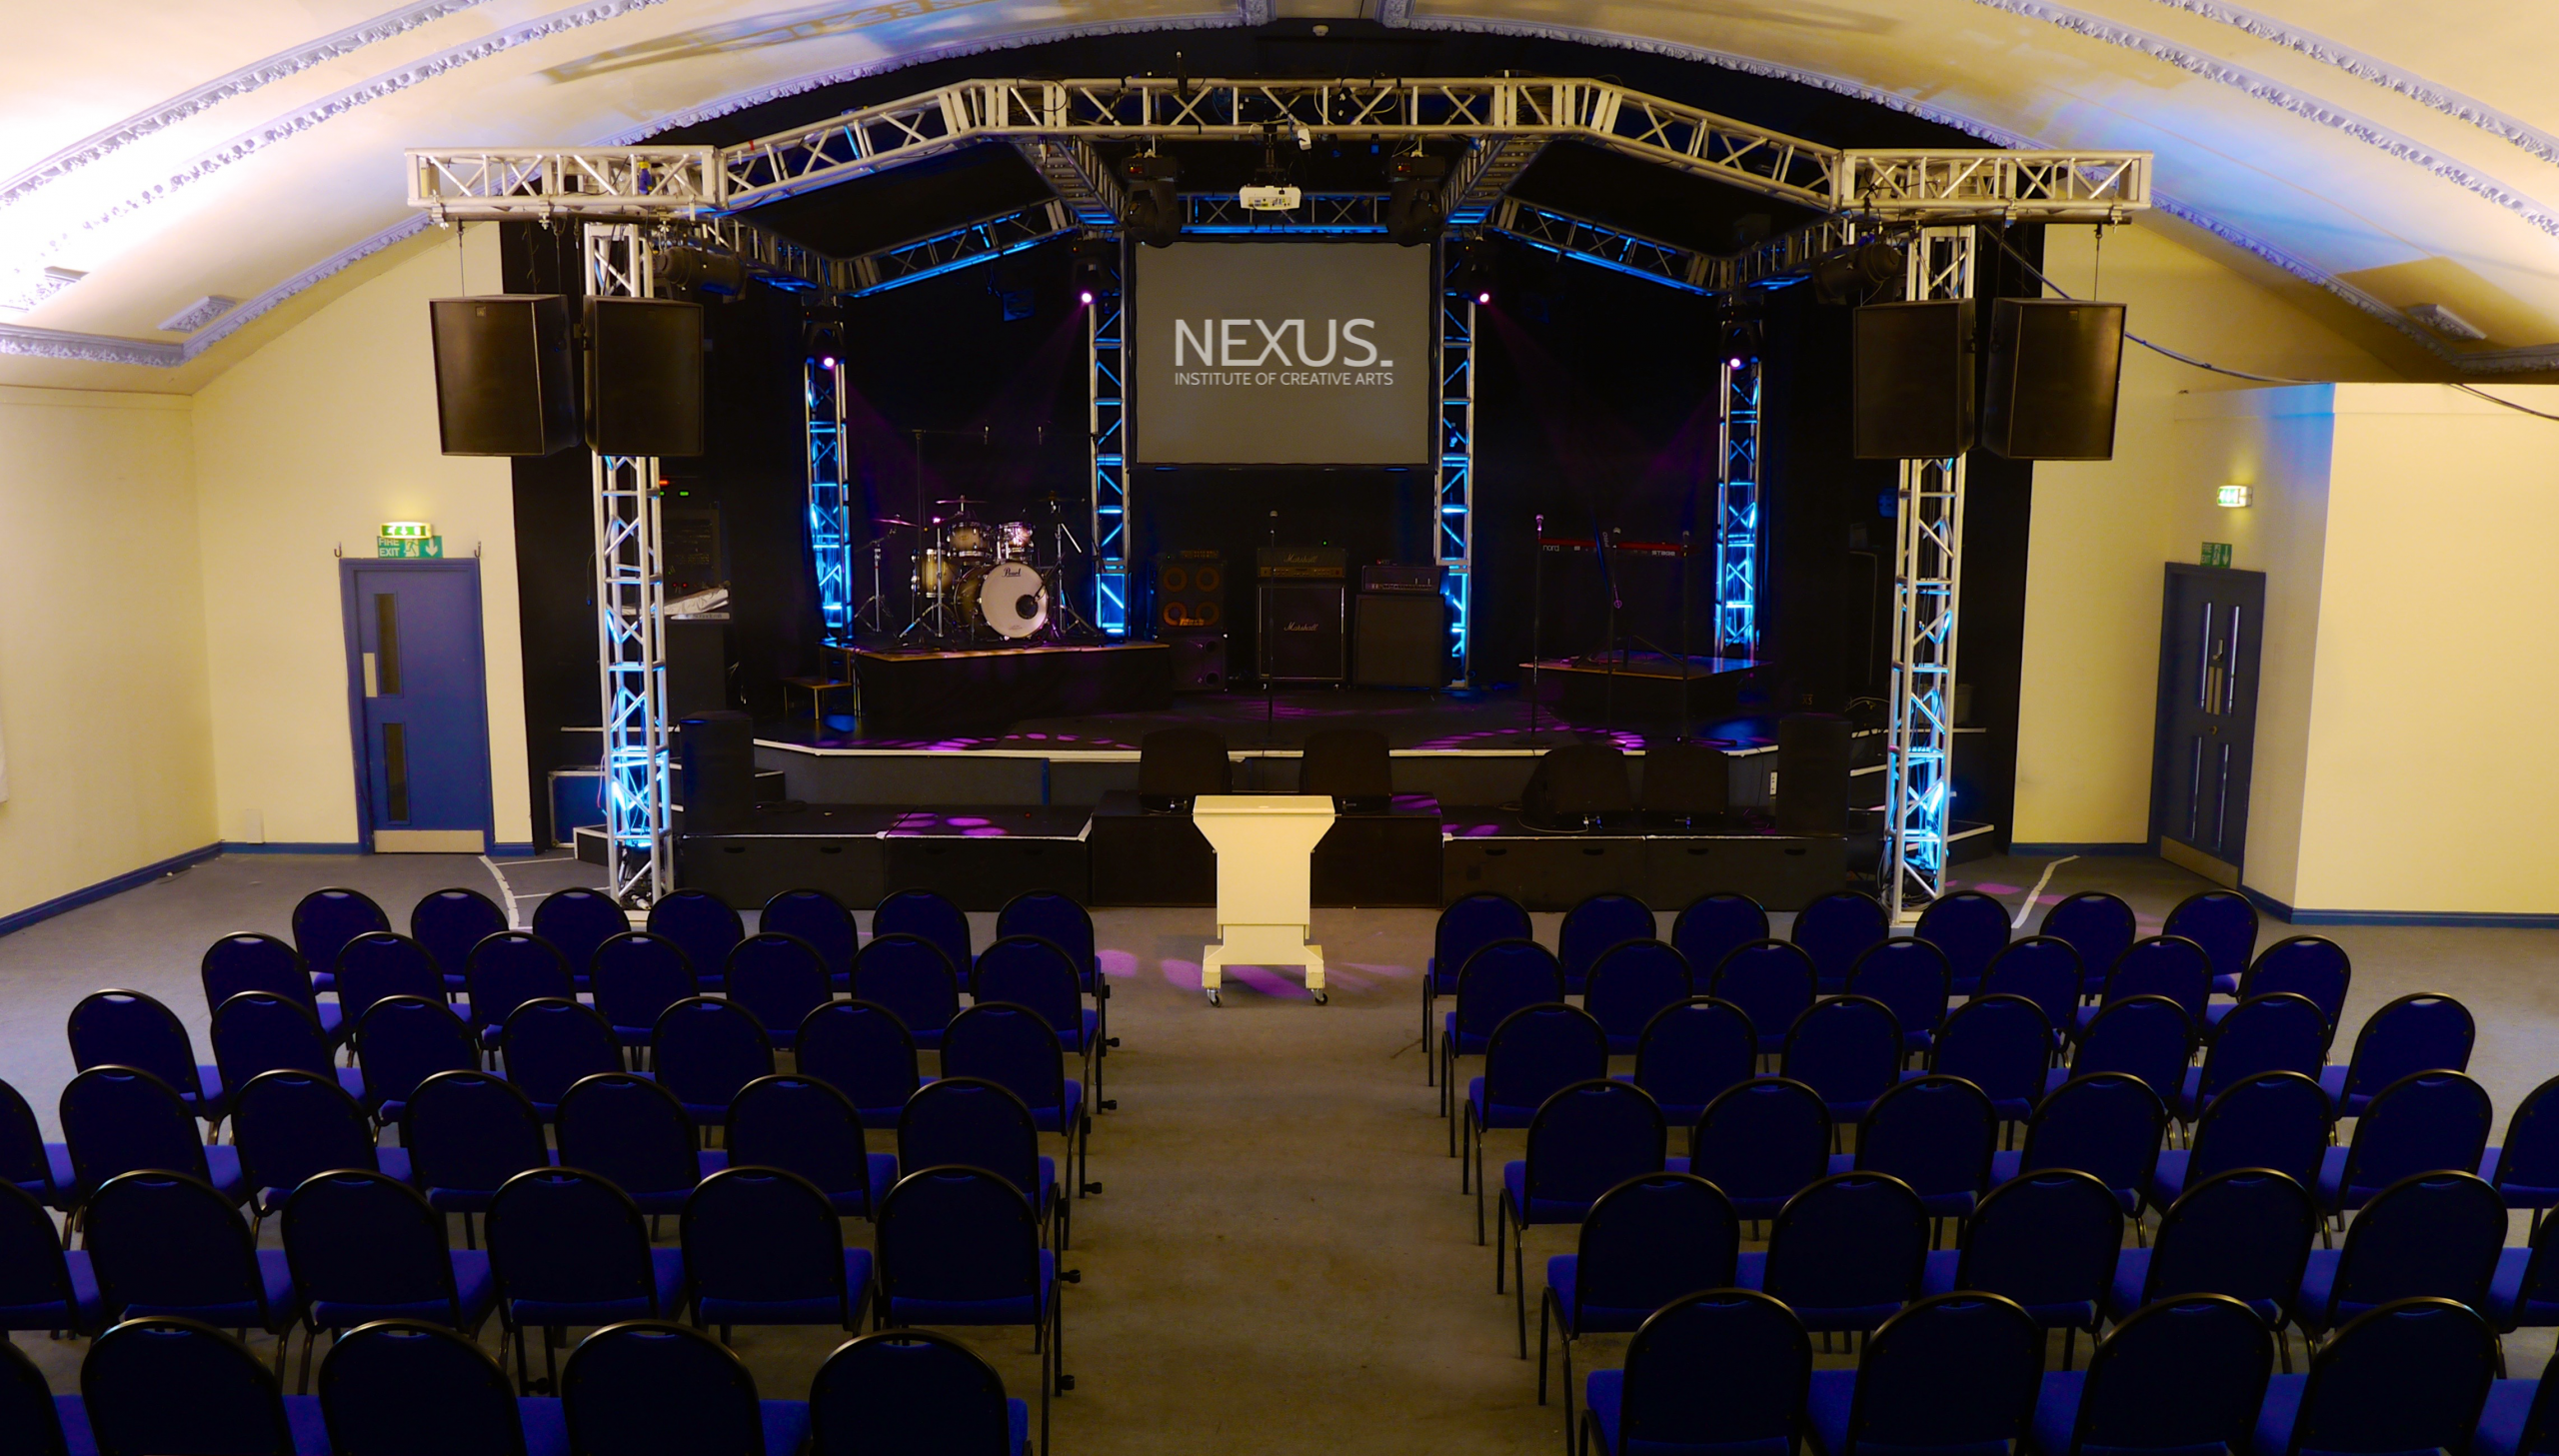 Nexus ICA Facilities - The Lecture Hall